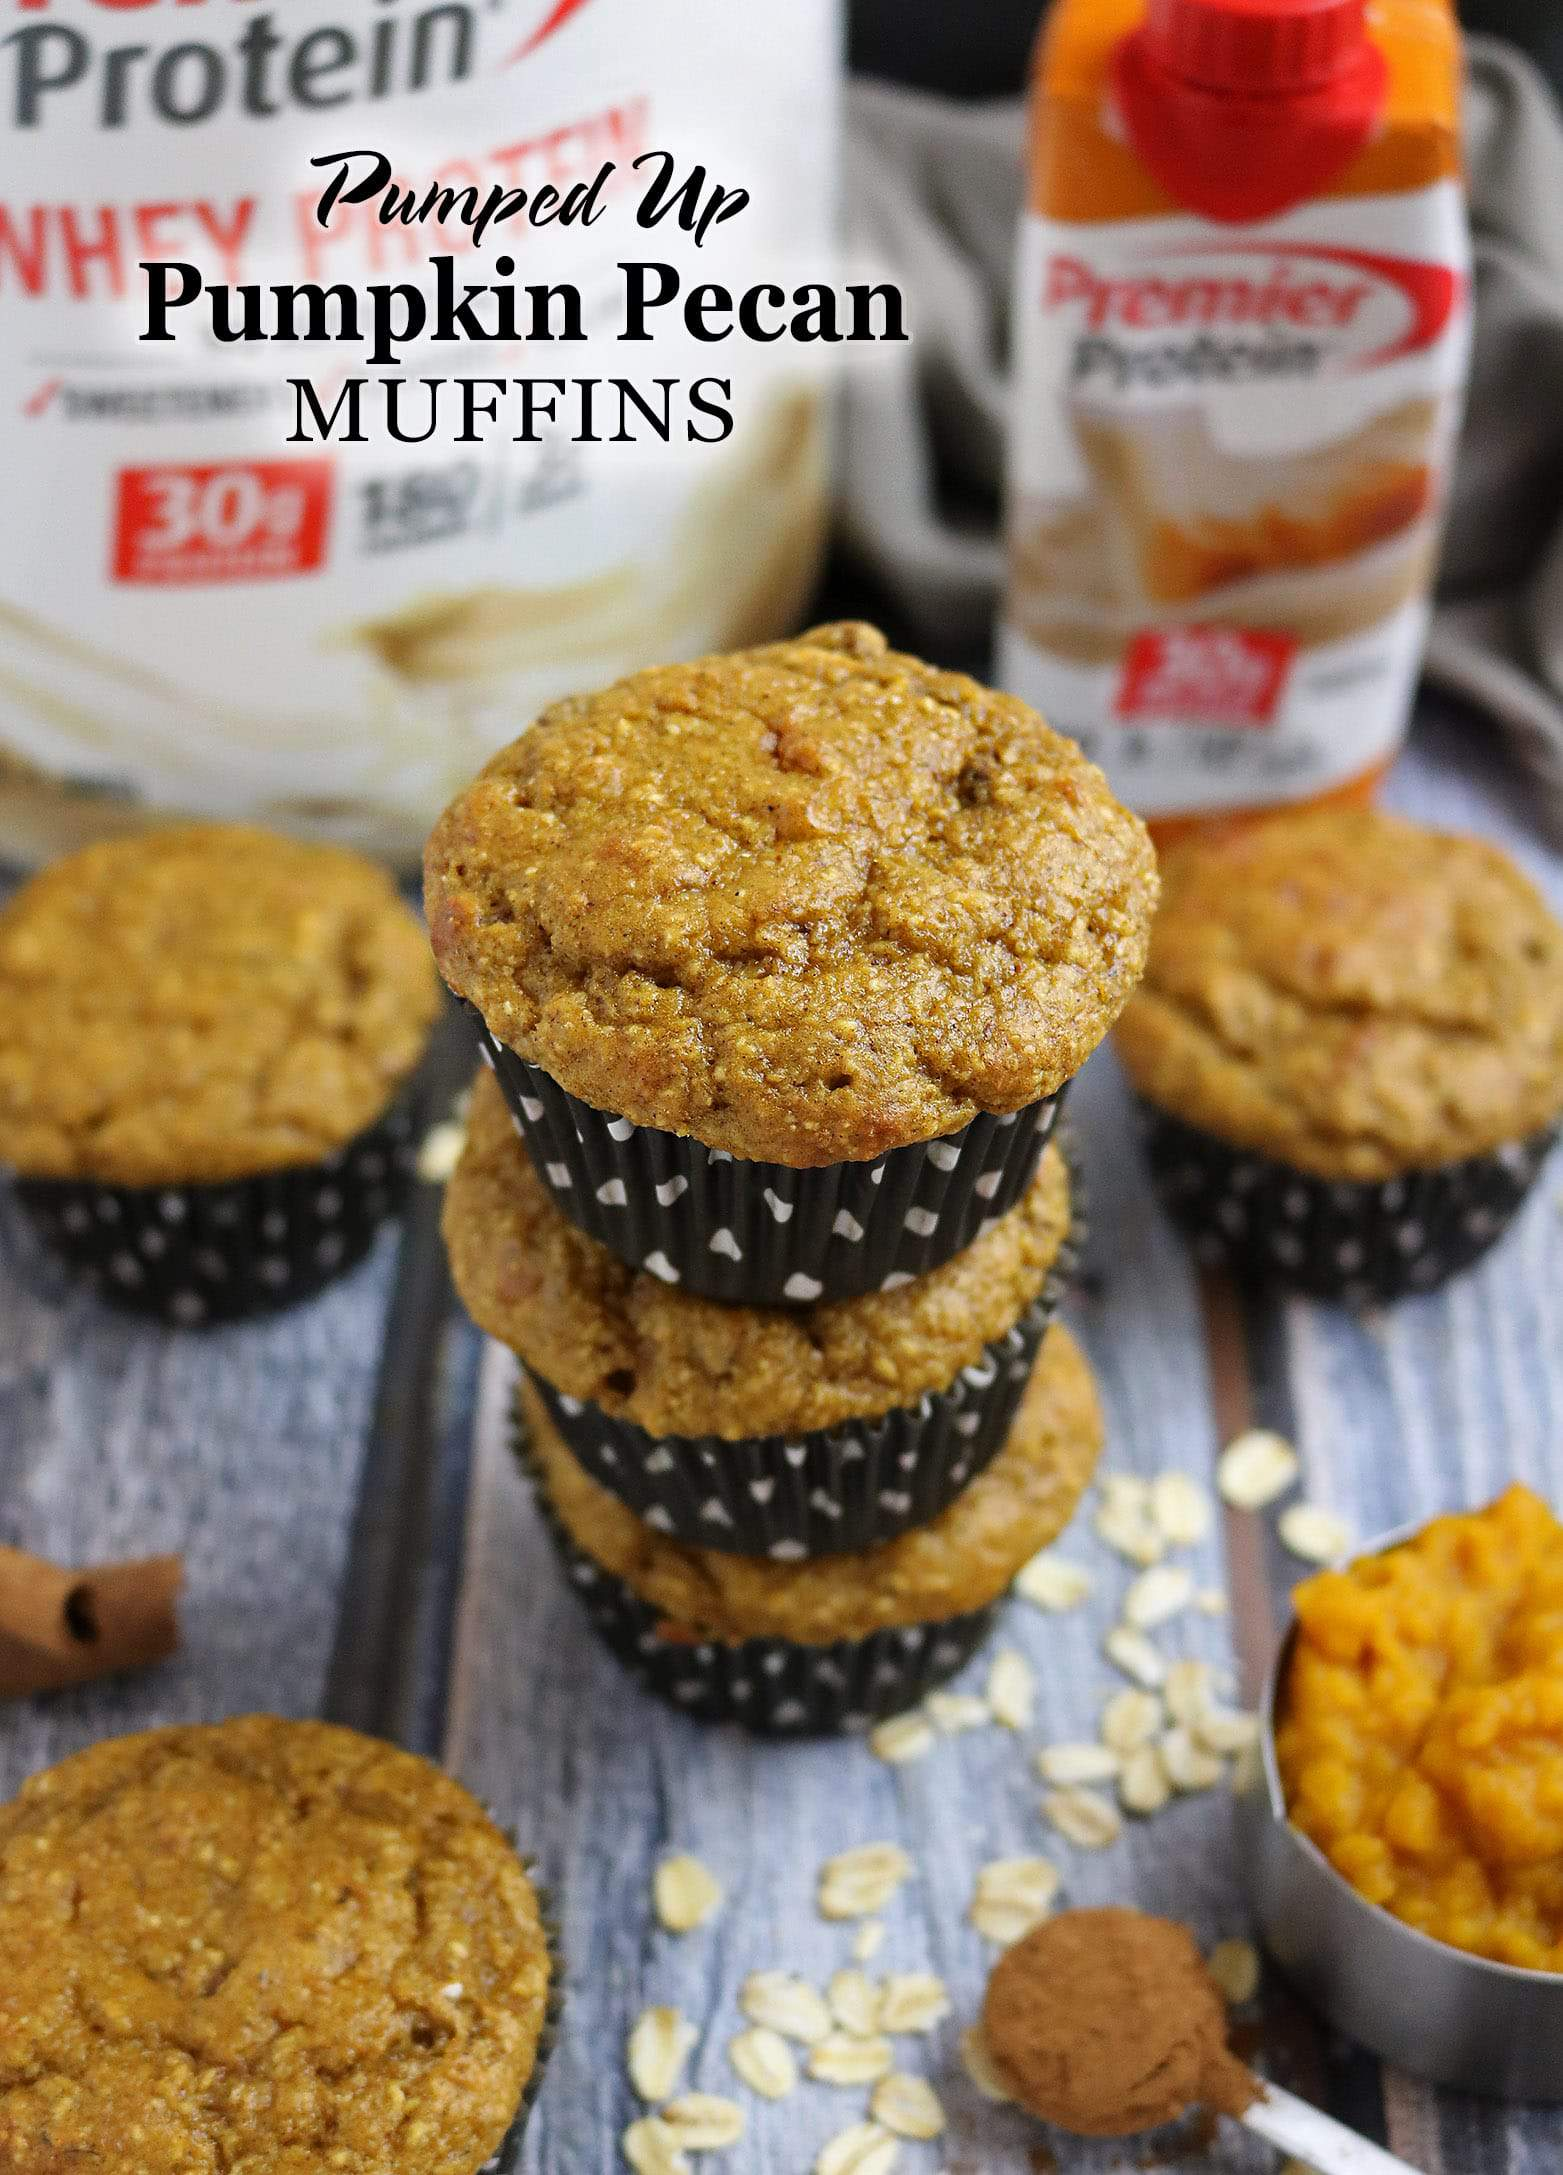 Pumped Up Pumpkin Pecan Muffins